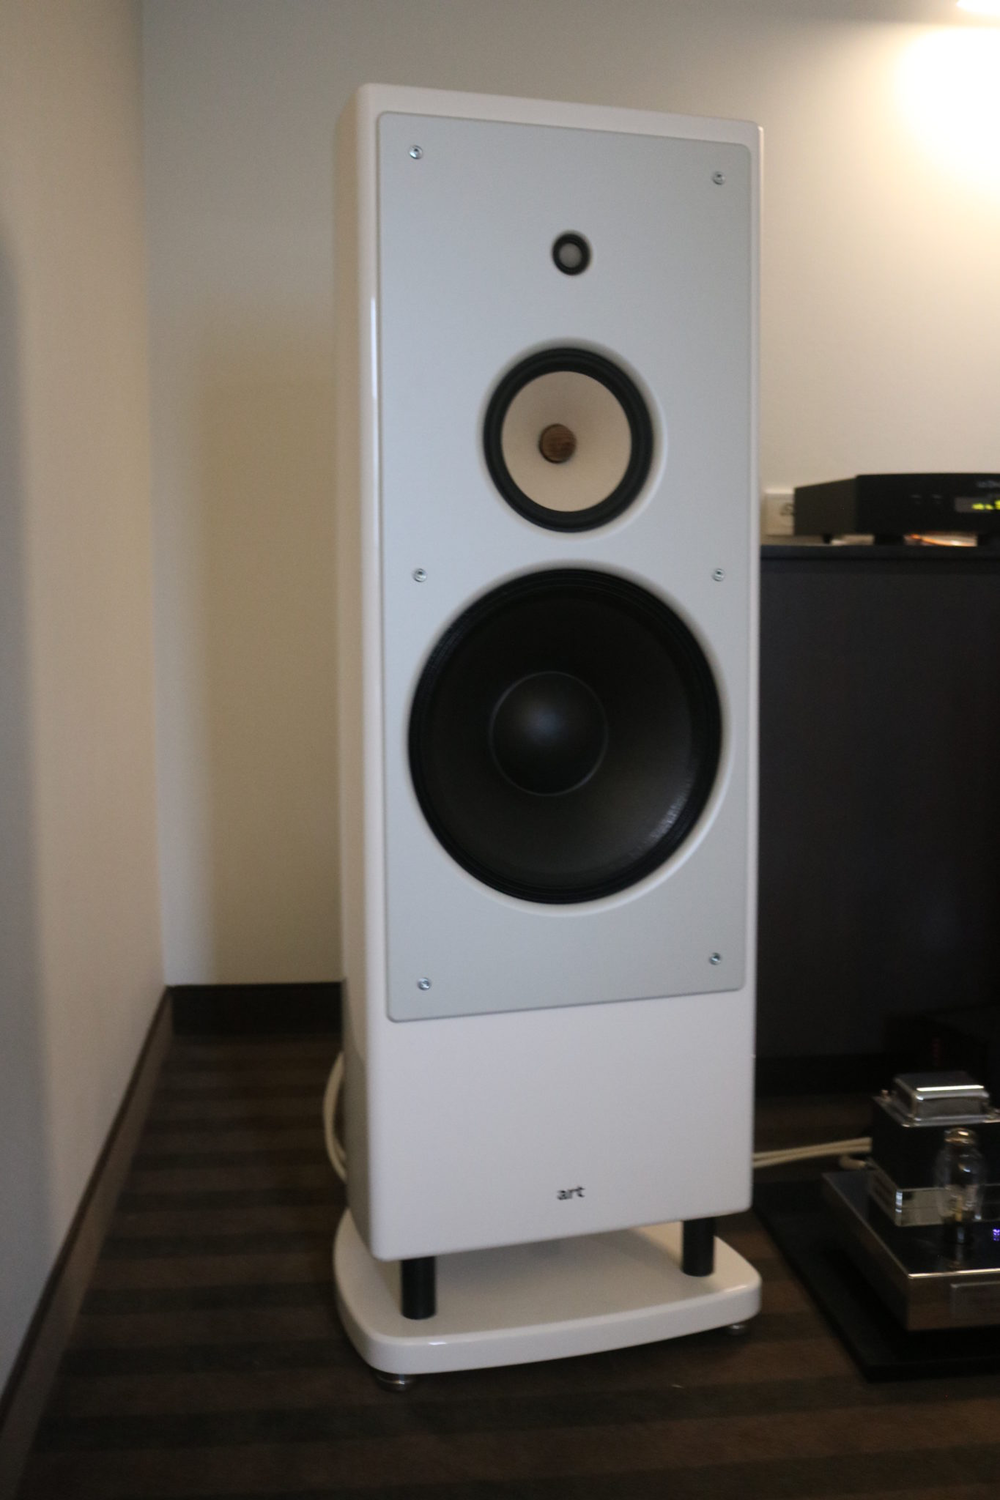 Studio High-End, Warsaw Audio Video Show 2018